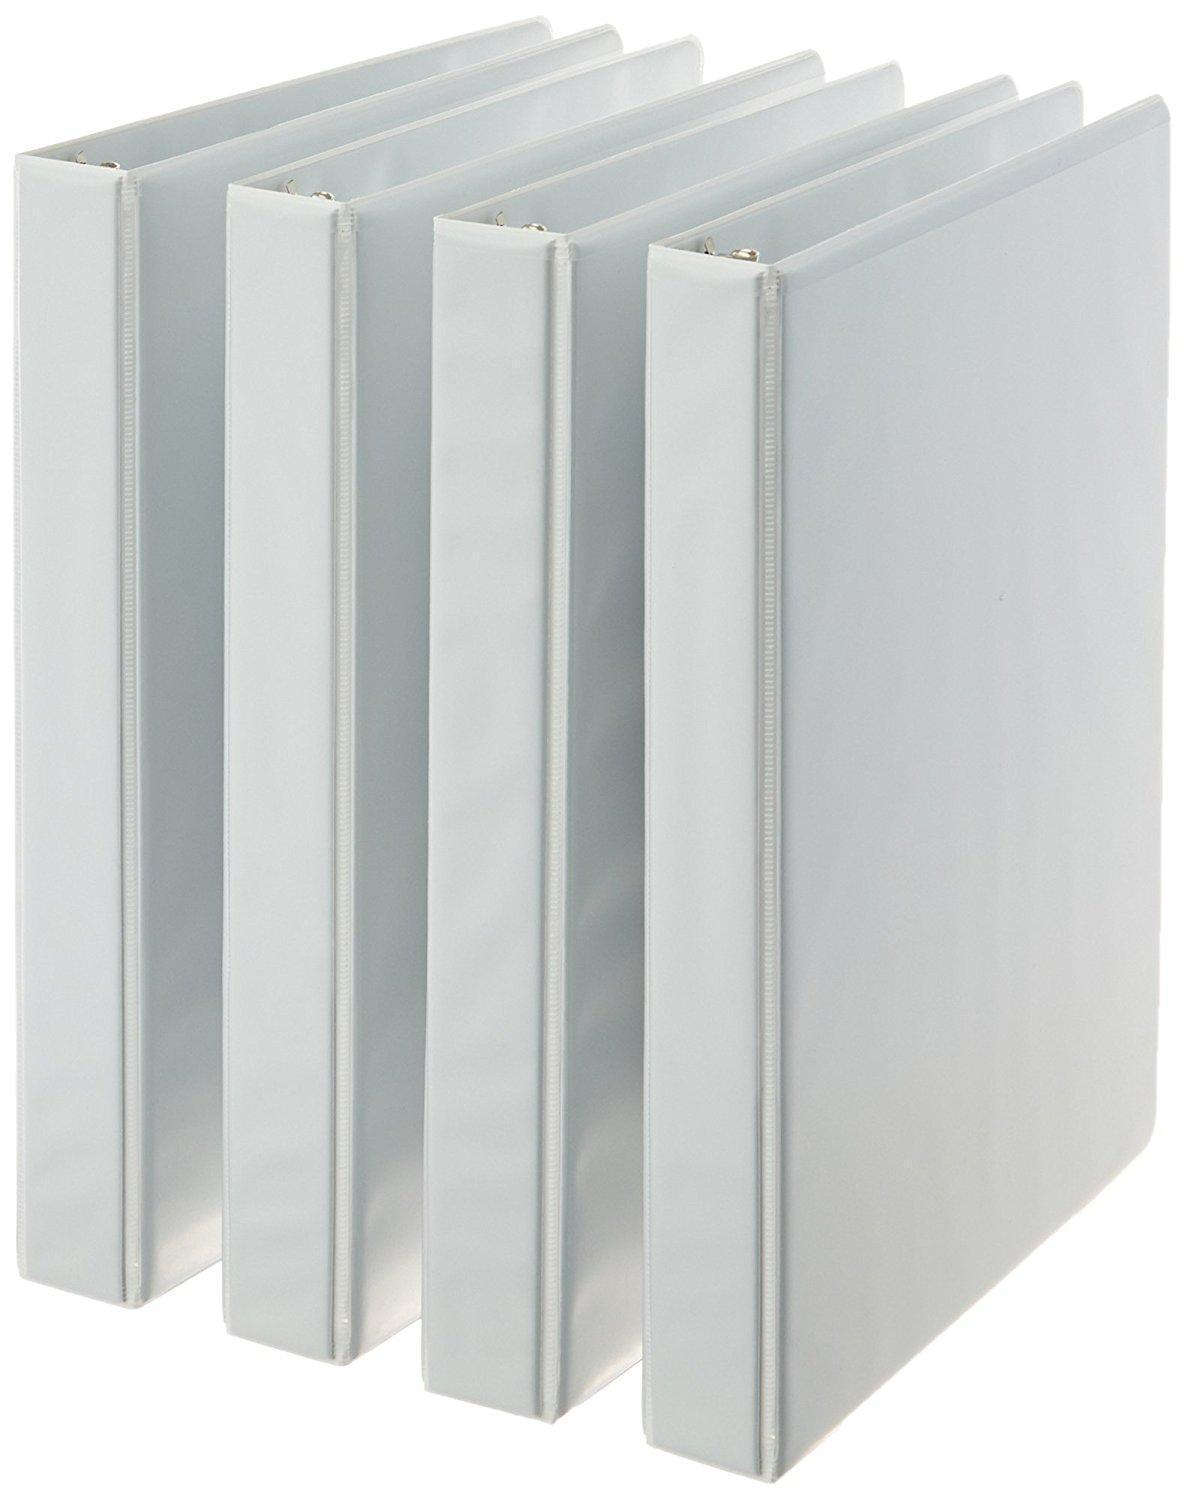 AmazonBasics 3-Ring Binder 1 Inch - 4-Pack (White) White 1-Inch